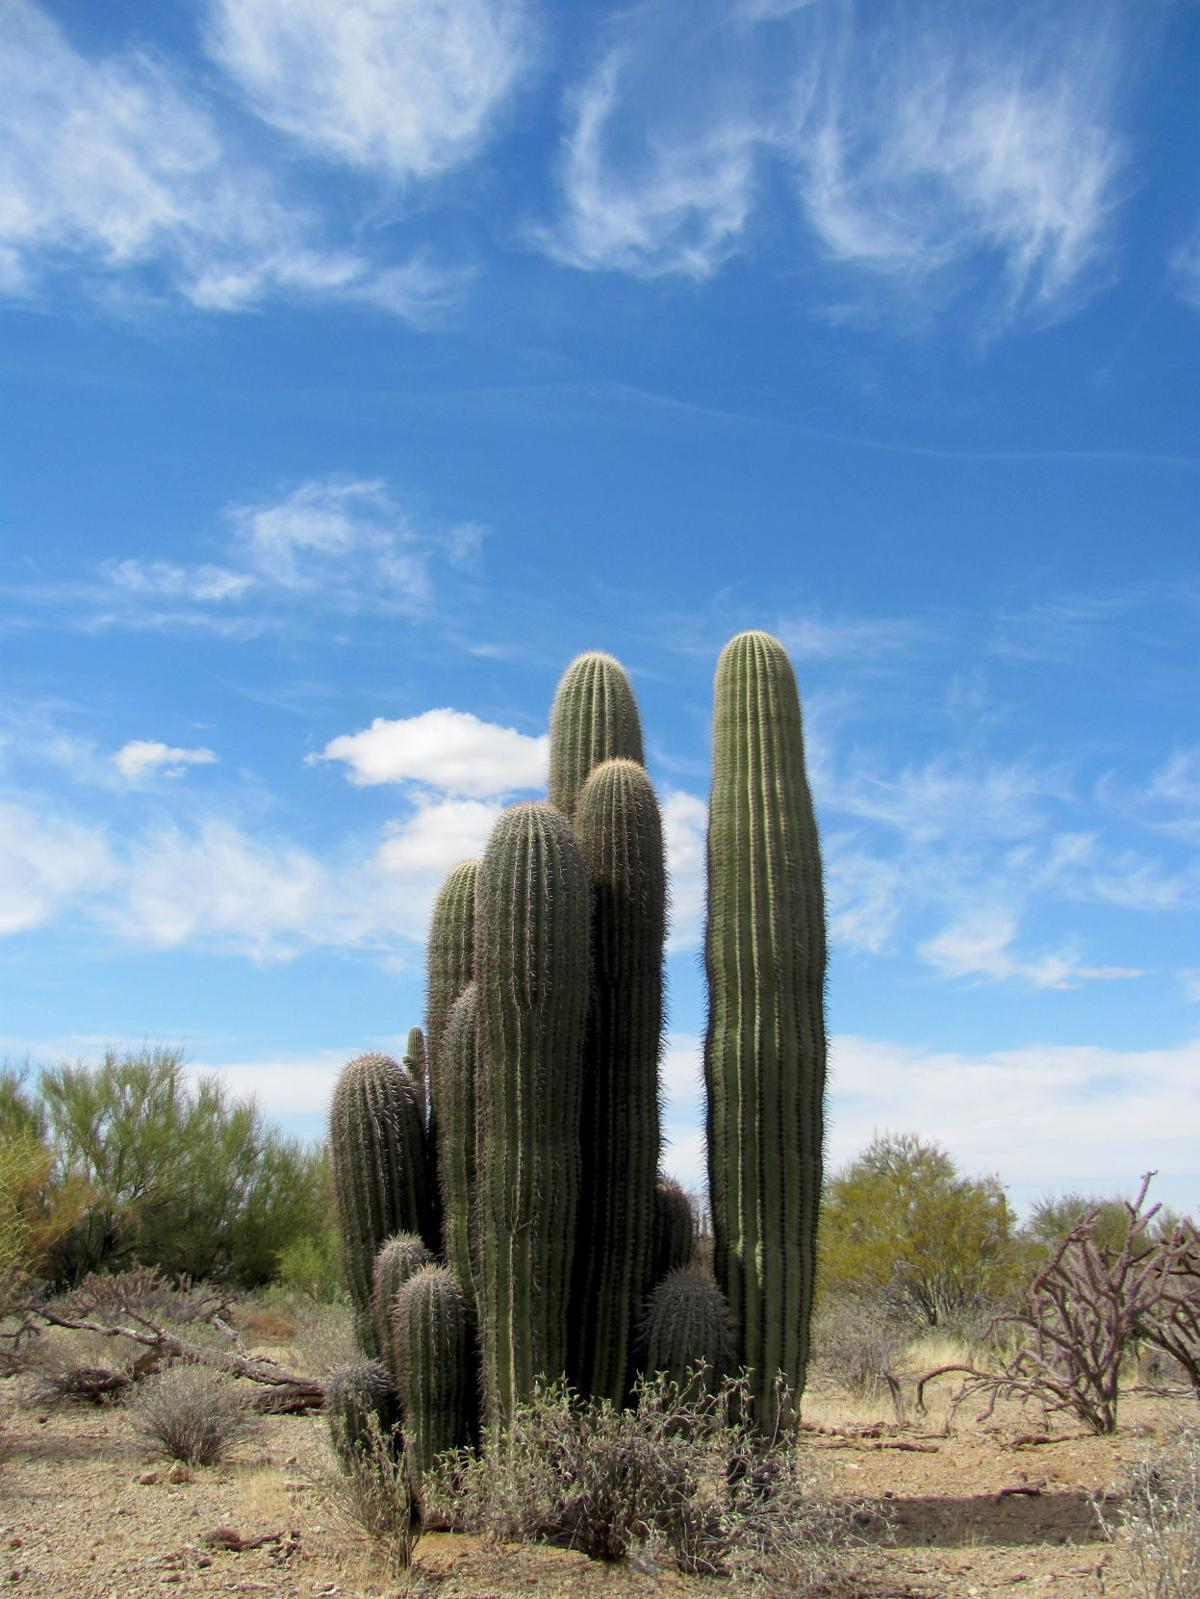 Clouds over cactus cluster